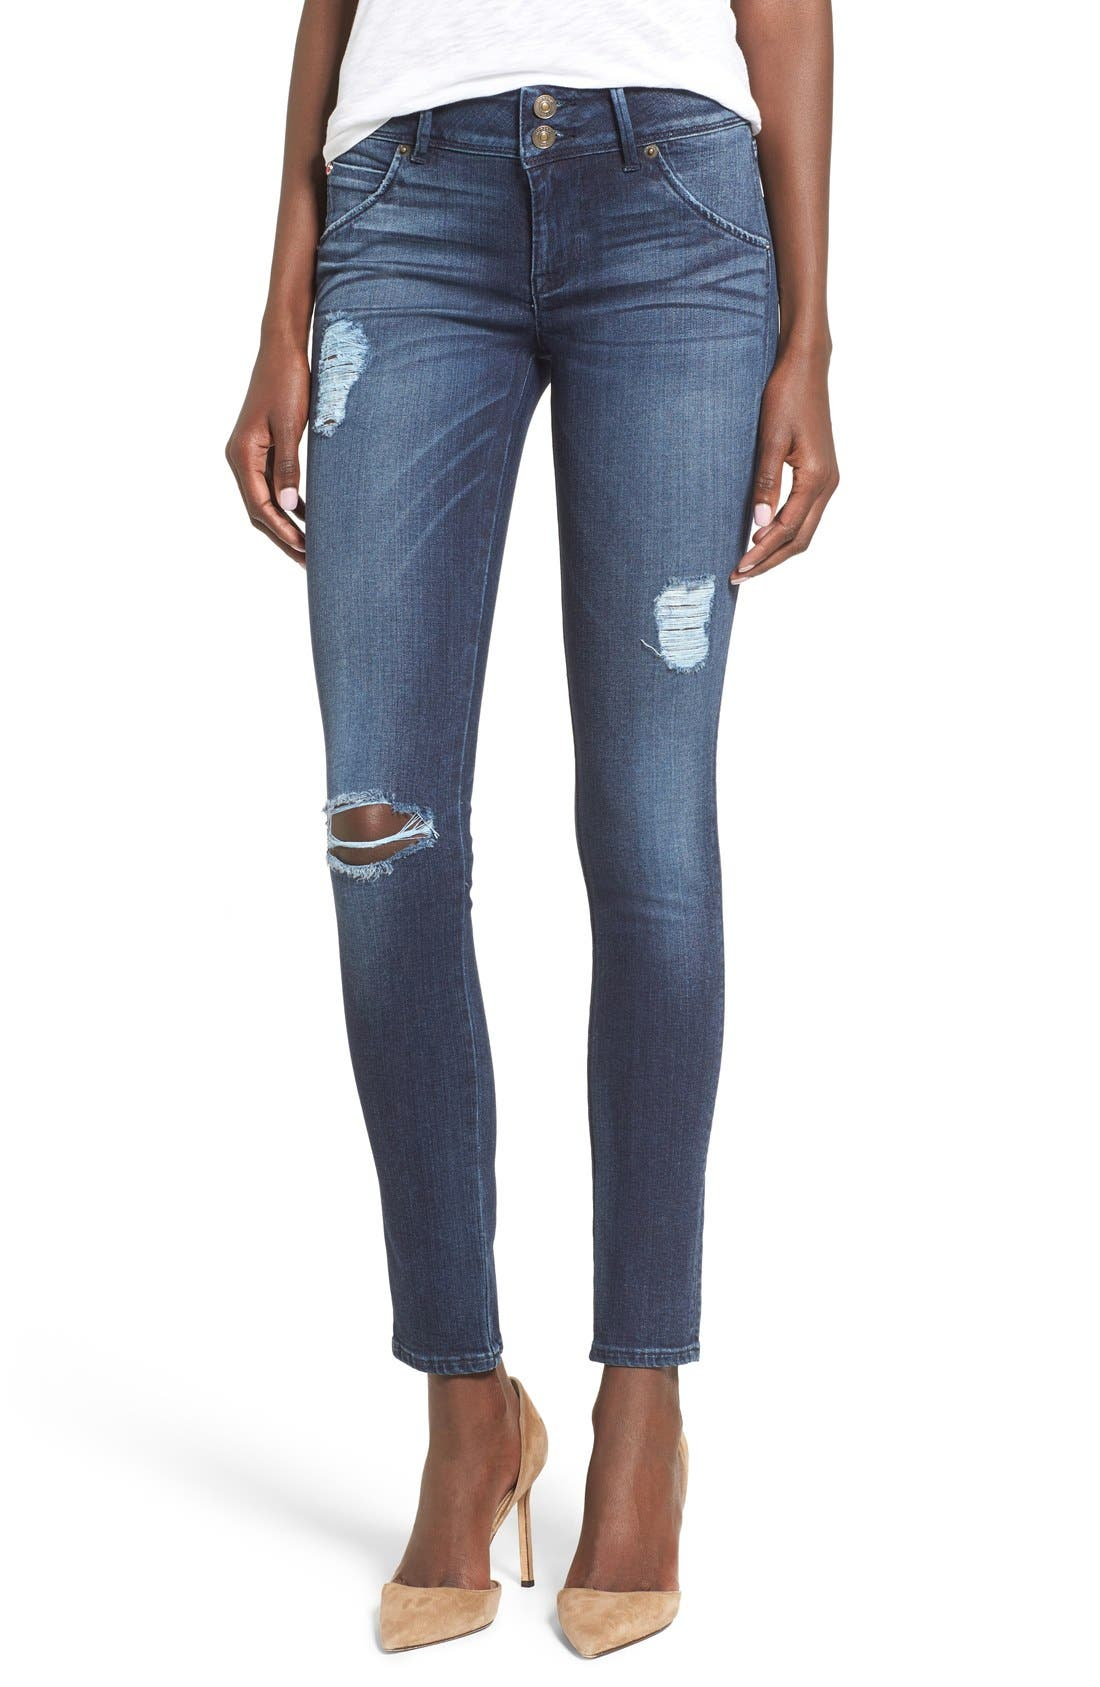 Main Image - Hudson Jeans 'Collin' Skinny Jeans (Anchor Light)